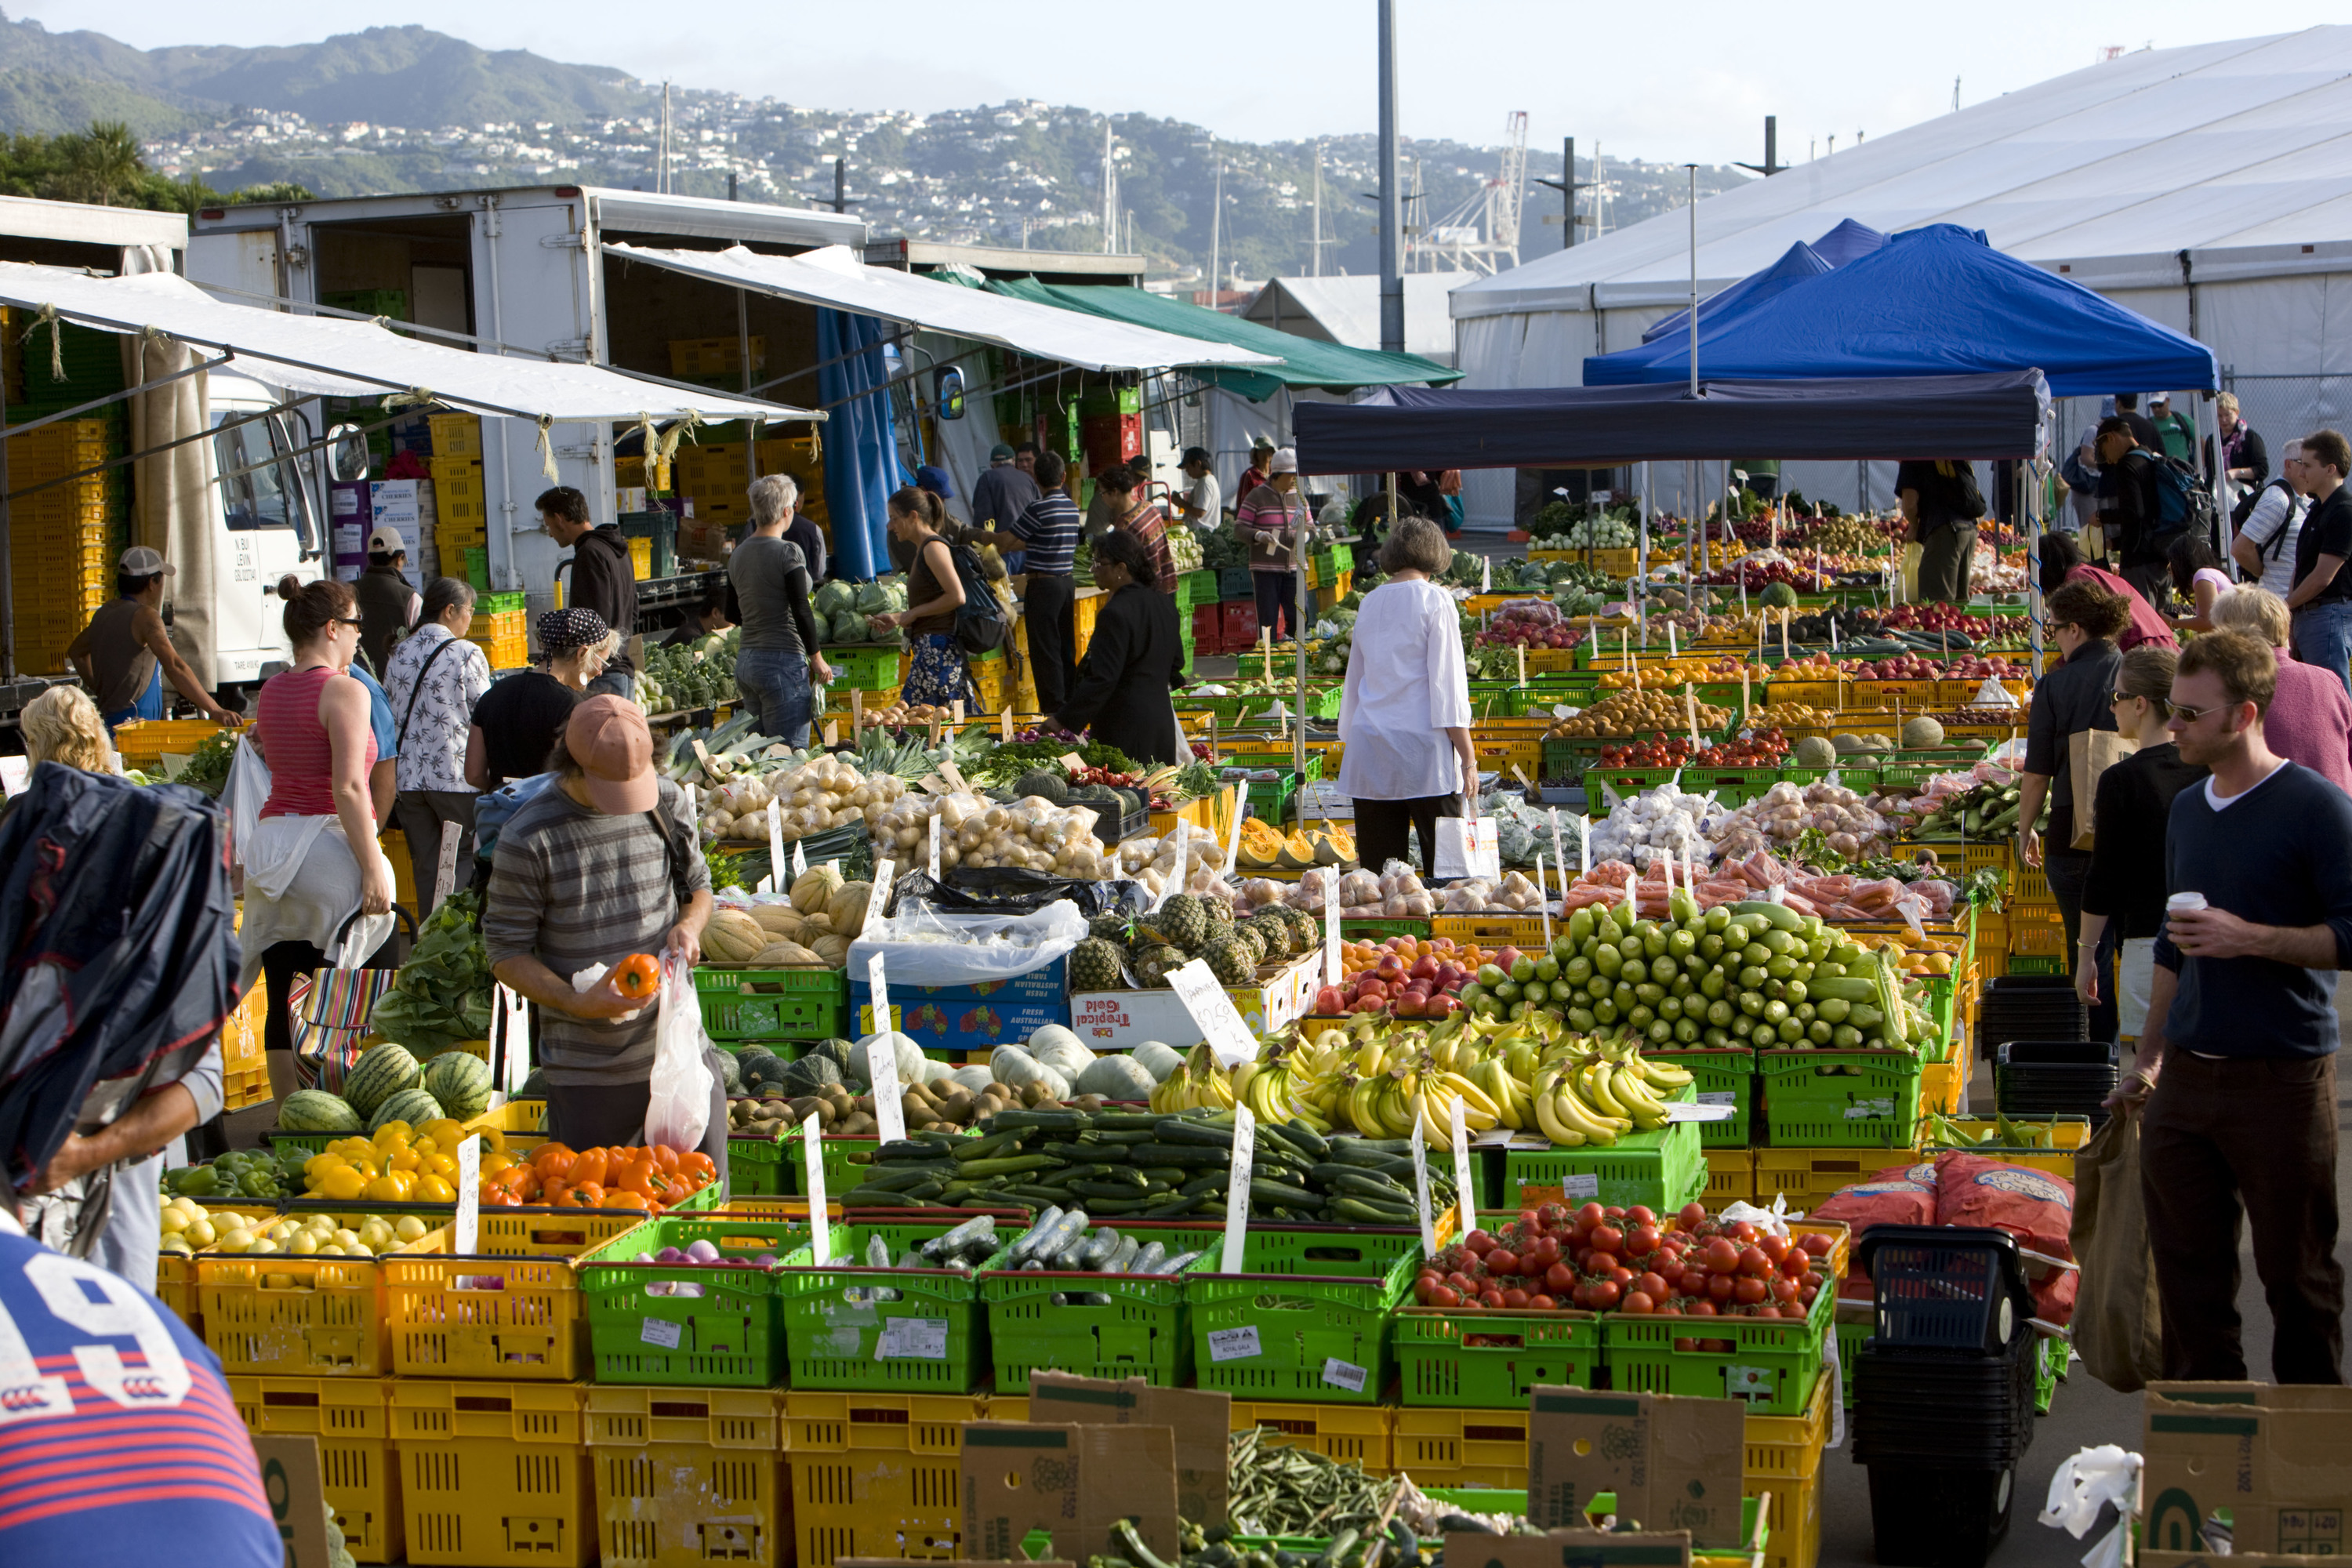 People shopping at the market